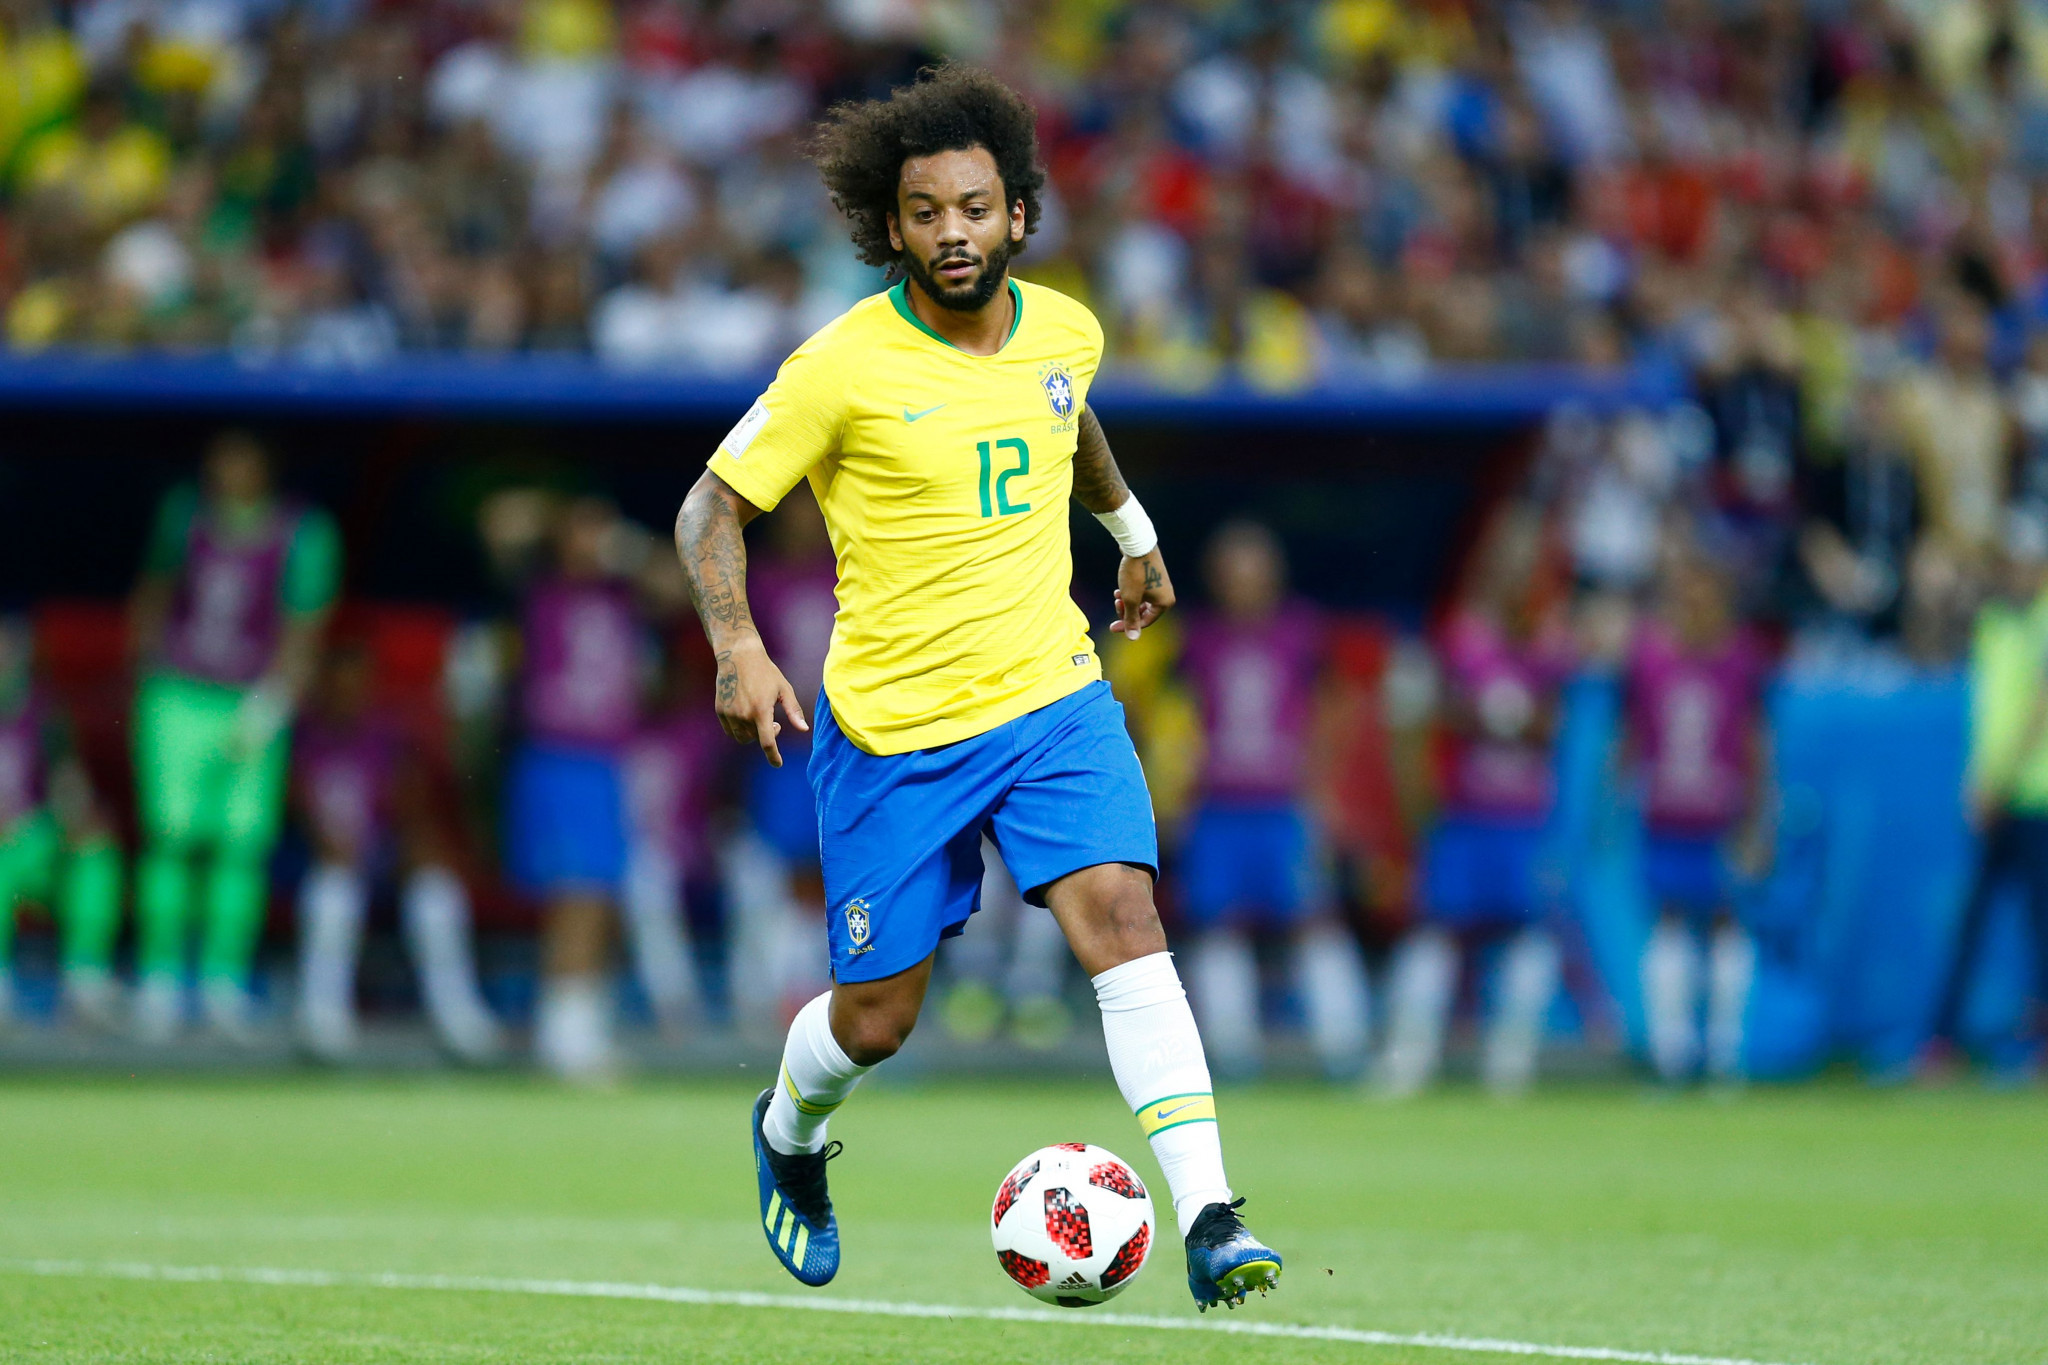 South American qualifiers for FIFA 2022 World Cup to start in October